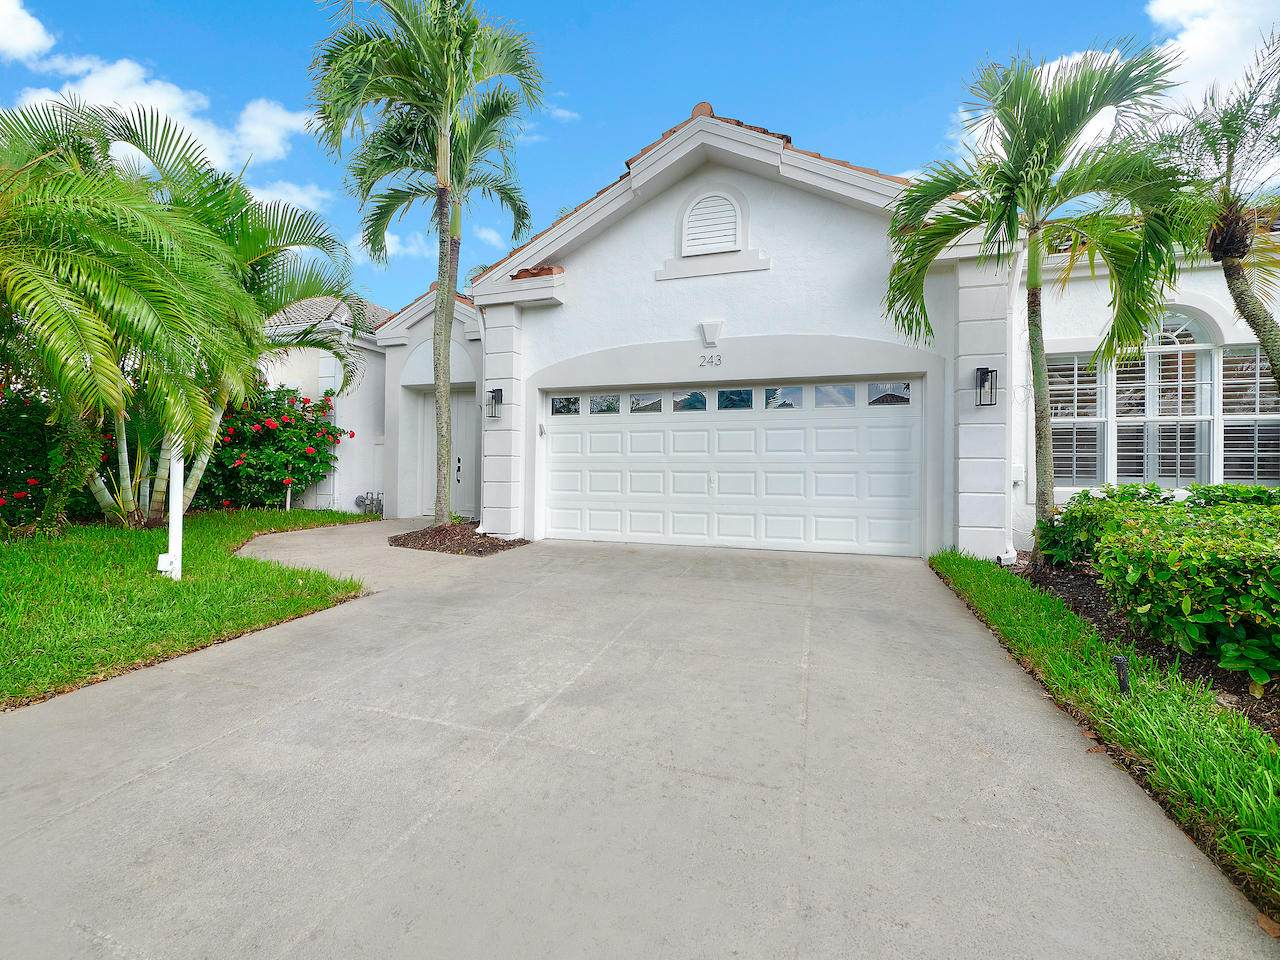 243 Coral Cay Terrace - Photo 1